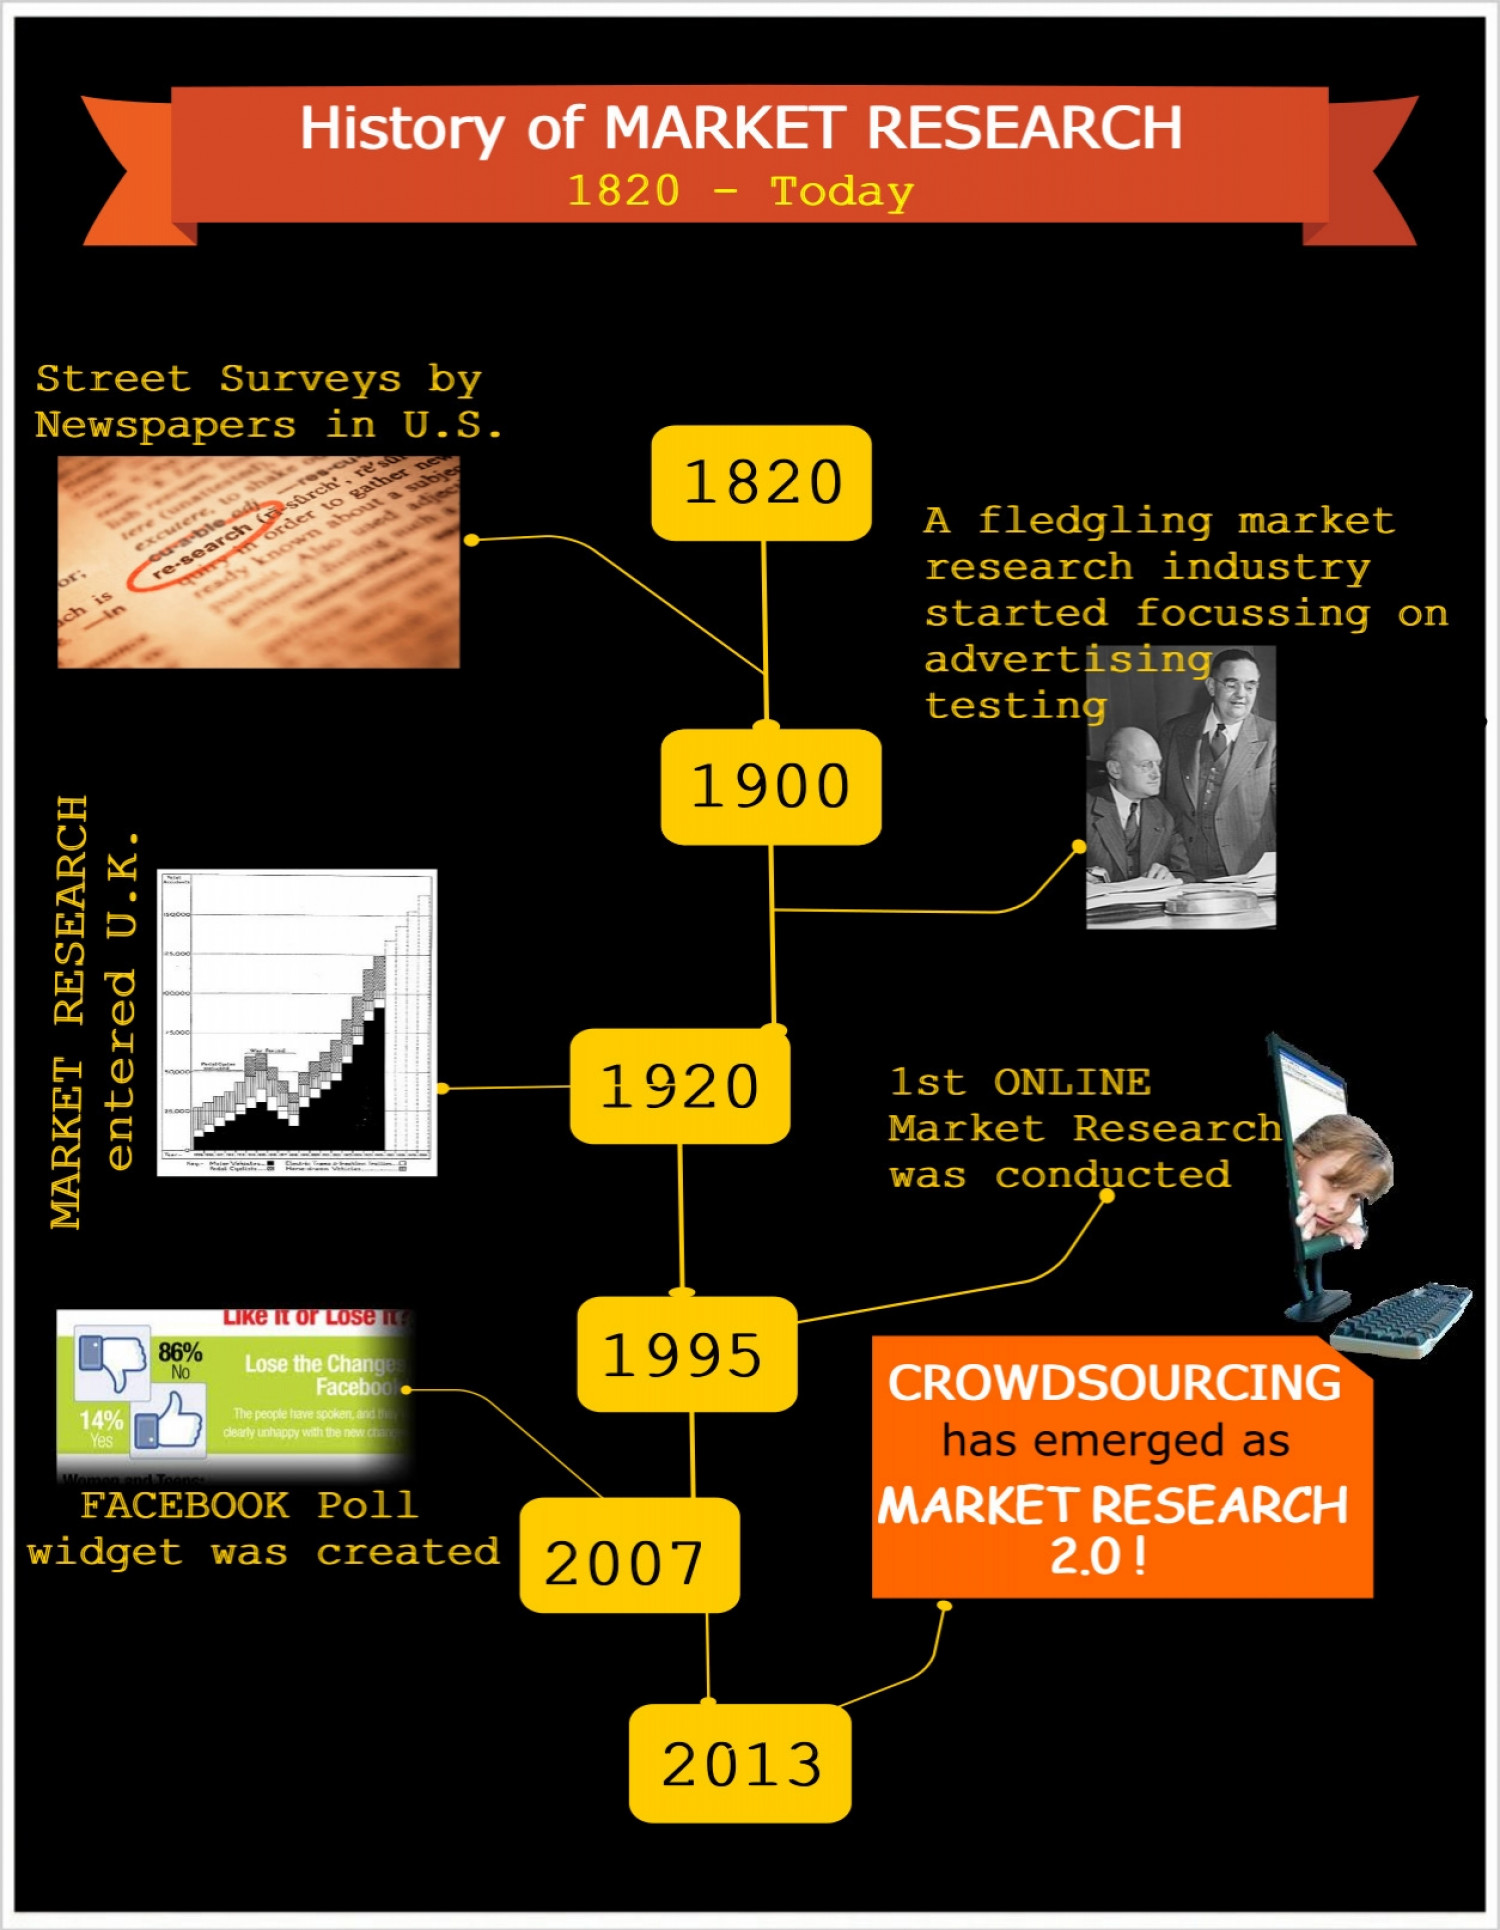 History of Market Research Infographic